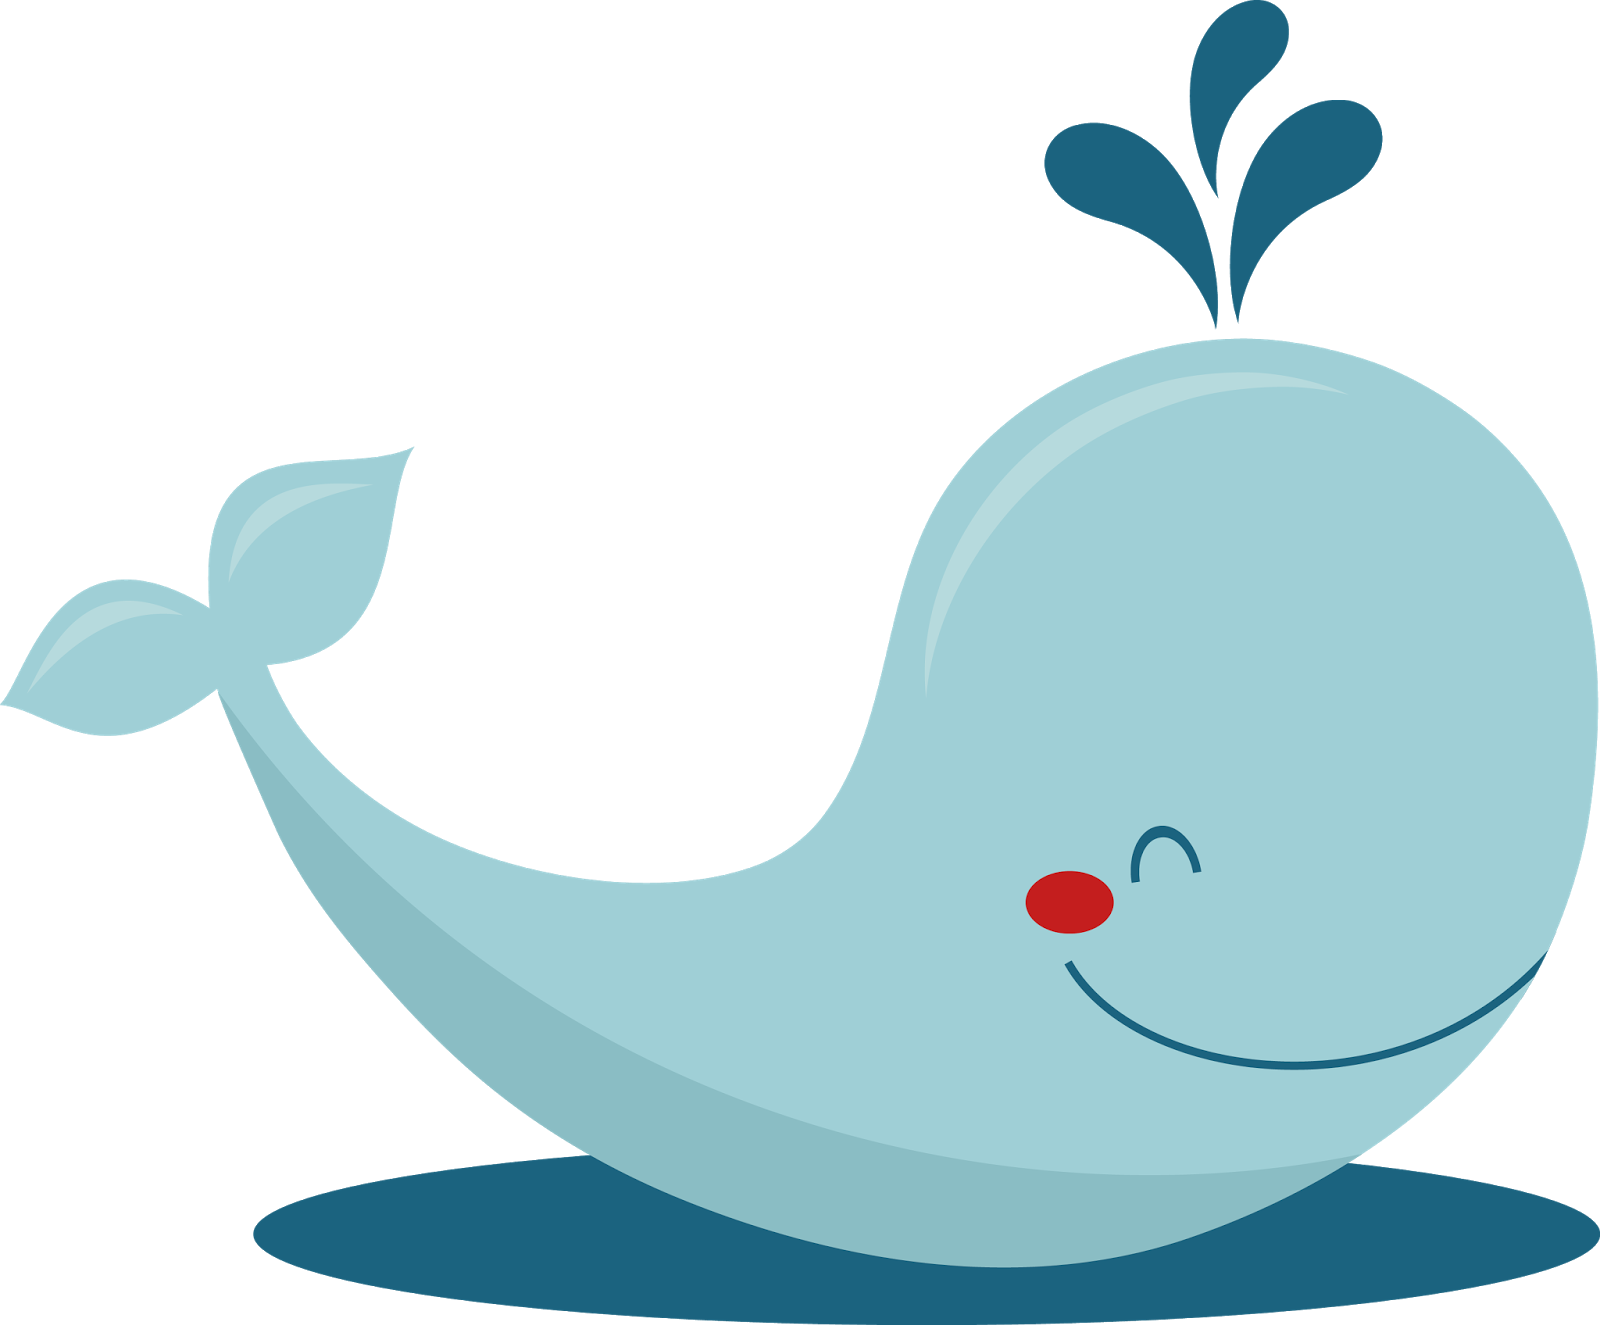 Whale clipart #18, Download drawings